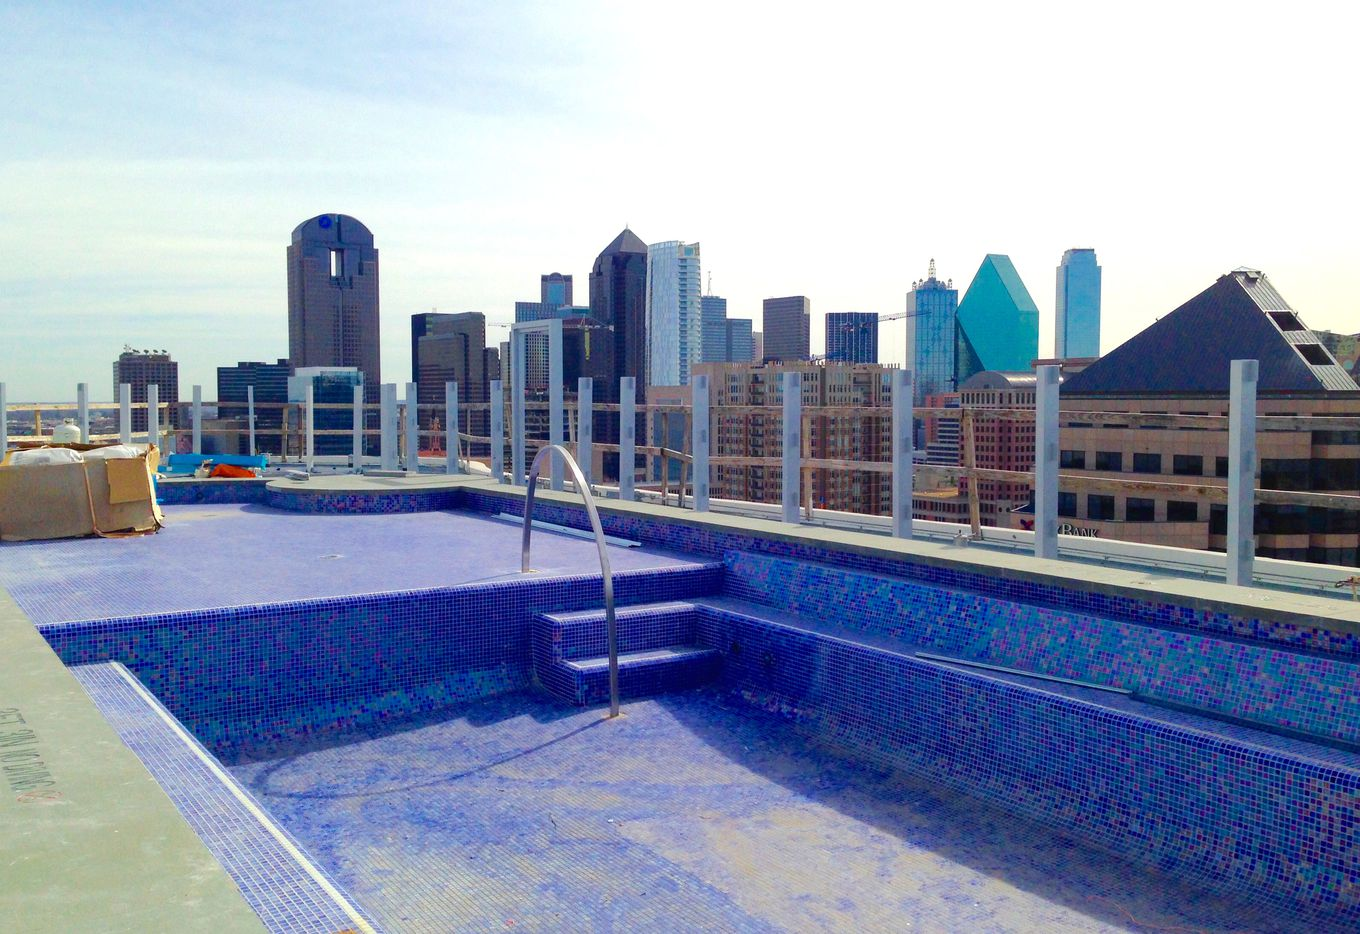 A rooftop pool is still under construction at the One Uptown apartments on McKinney Avenue. (Steve Brown/Staff)